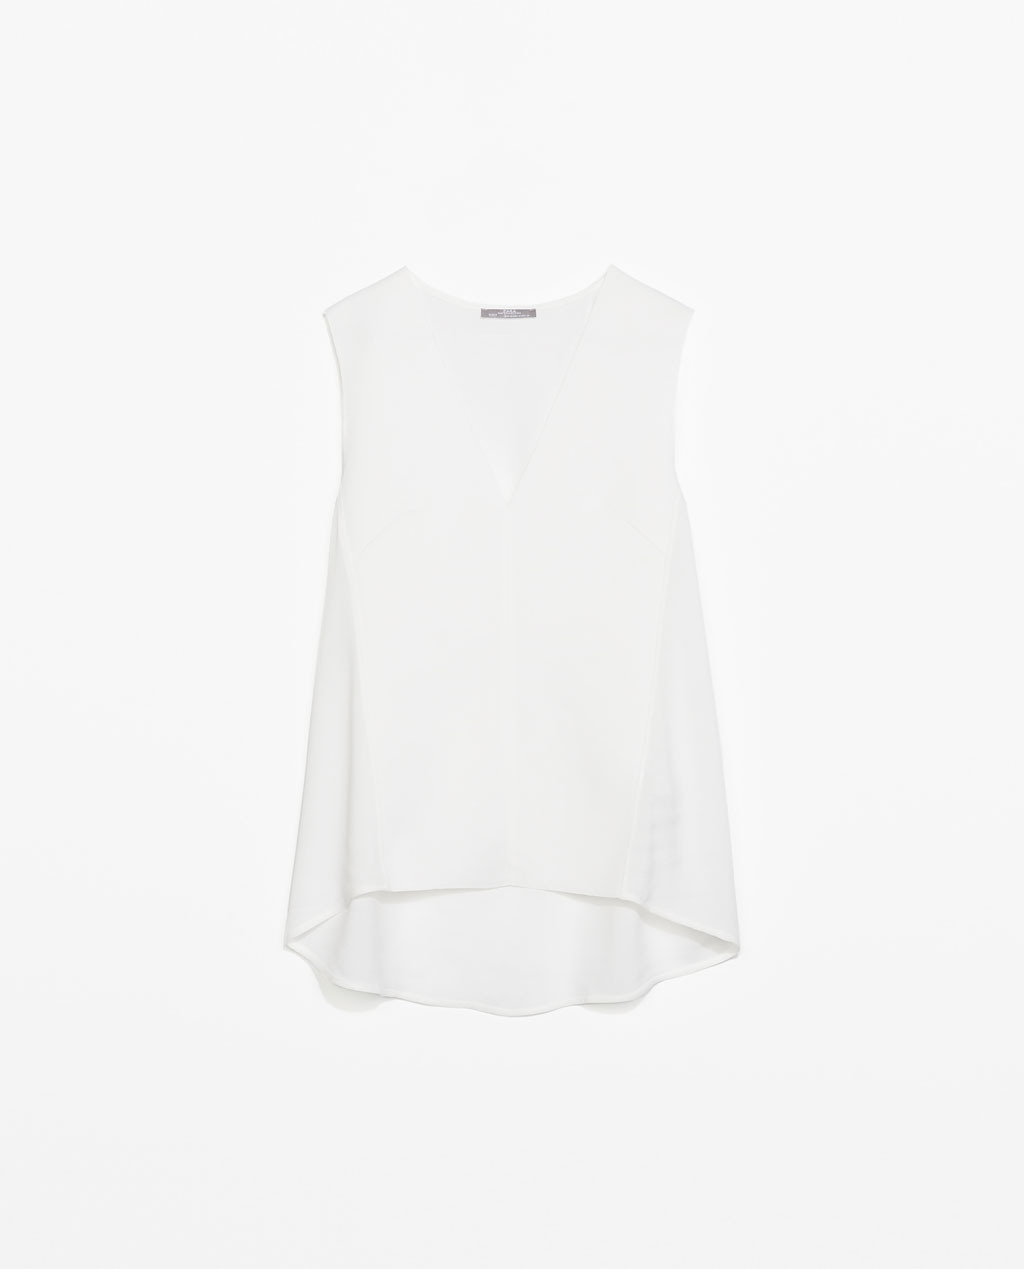 V Neck Top - neckline: low v-neck; pattern: plain; sleeve style: sleeveless; style: vest top; predominant colour: white; occasions: casual, creative work; length: standard; fibres: viscose/rayon - 100%; fit: loose; back detail: longer hem at back than at front; sleeve length: sleeveless; texture group: crepes; pattern type: fabric; season: s/s 2014